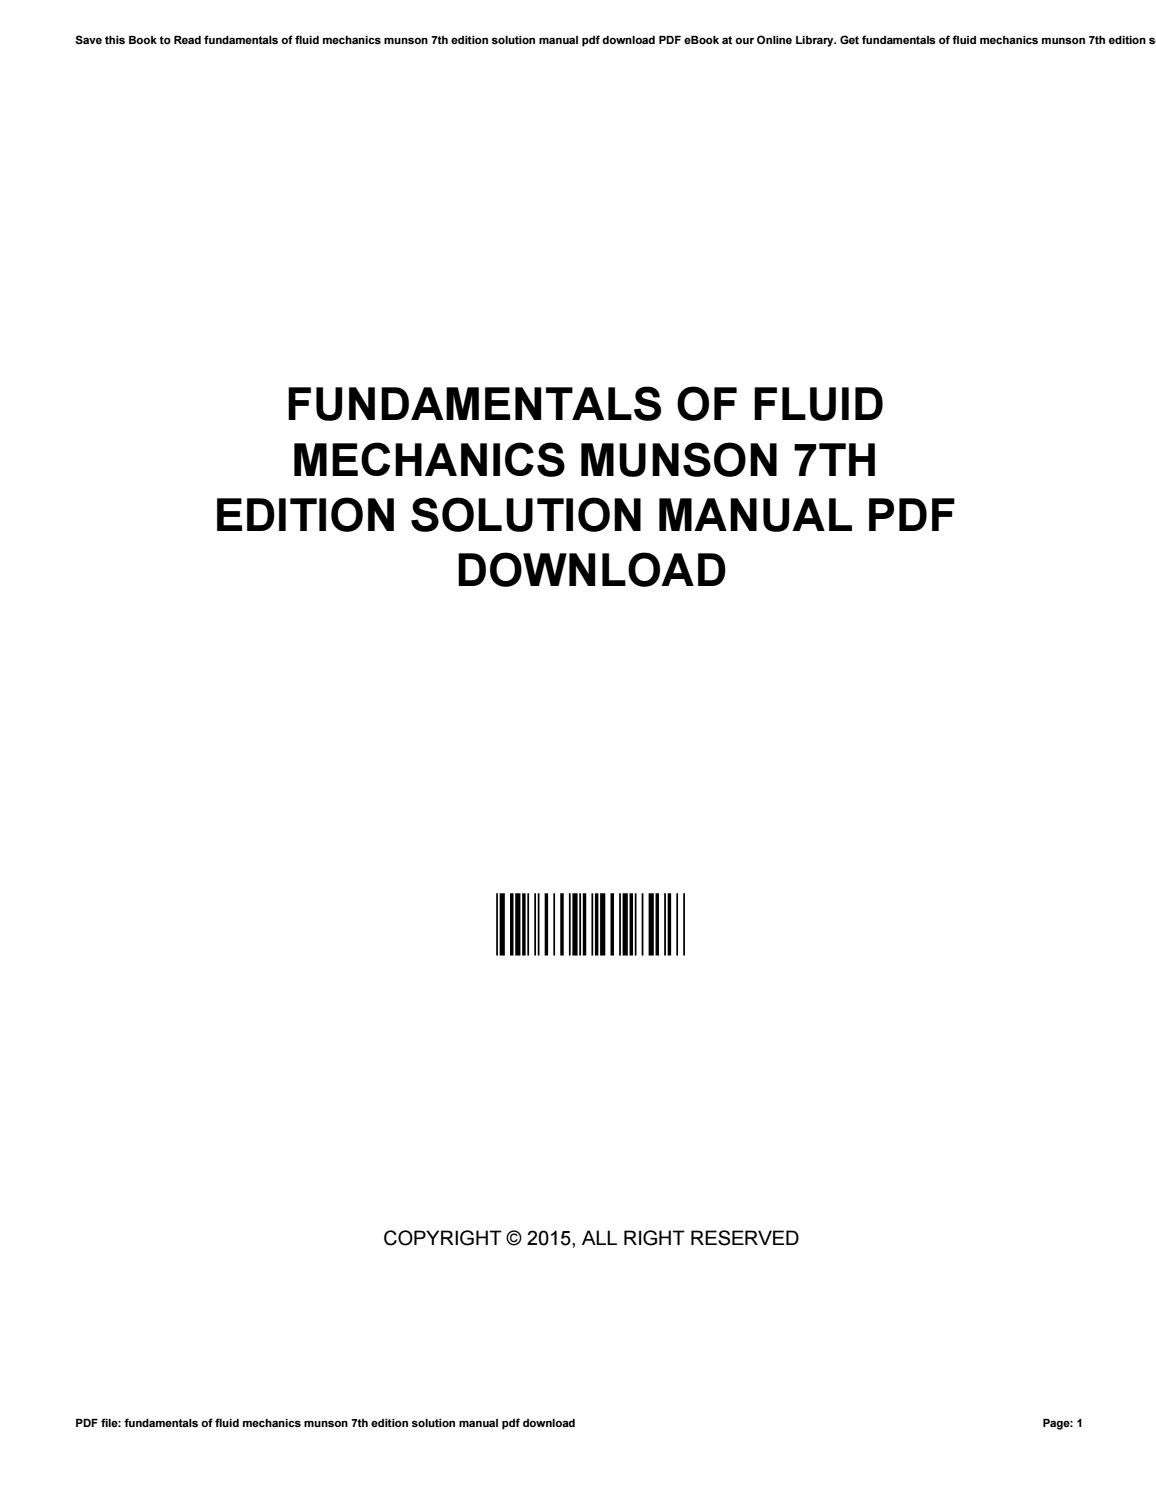 Fundamentals of fluid mechanics munson 7th edition solution manual pdf  download by MichealTate3821 - issuu